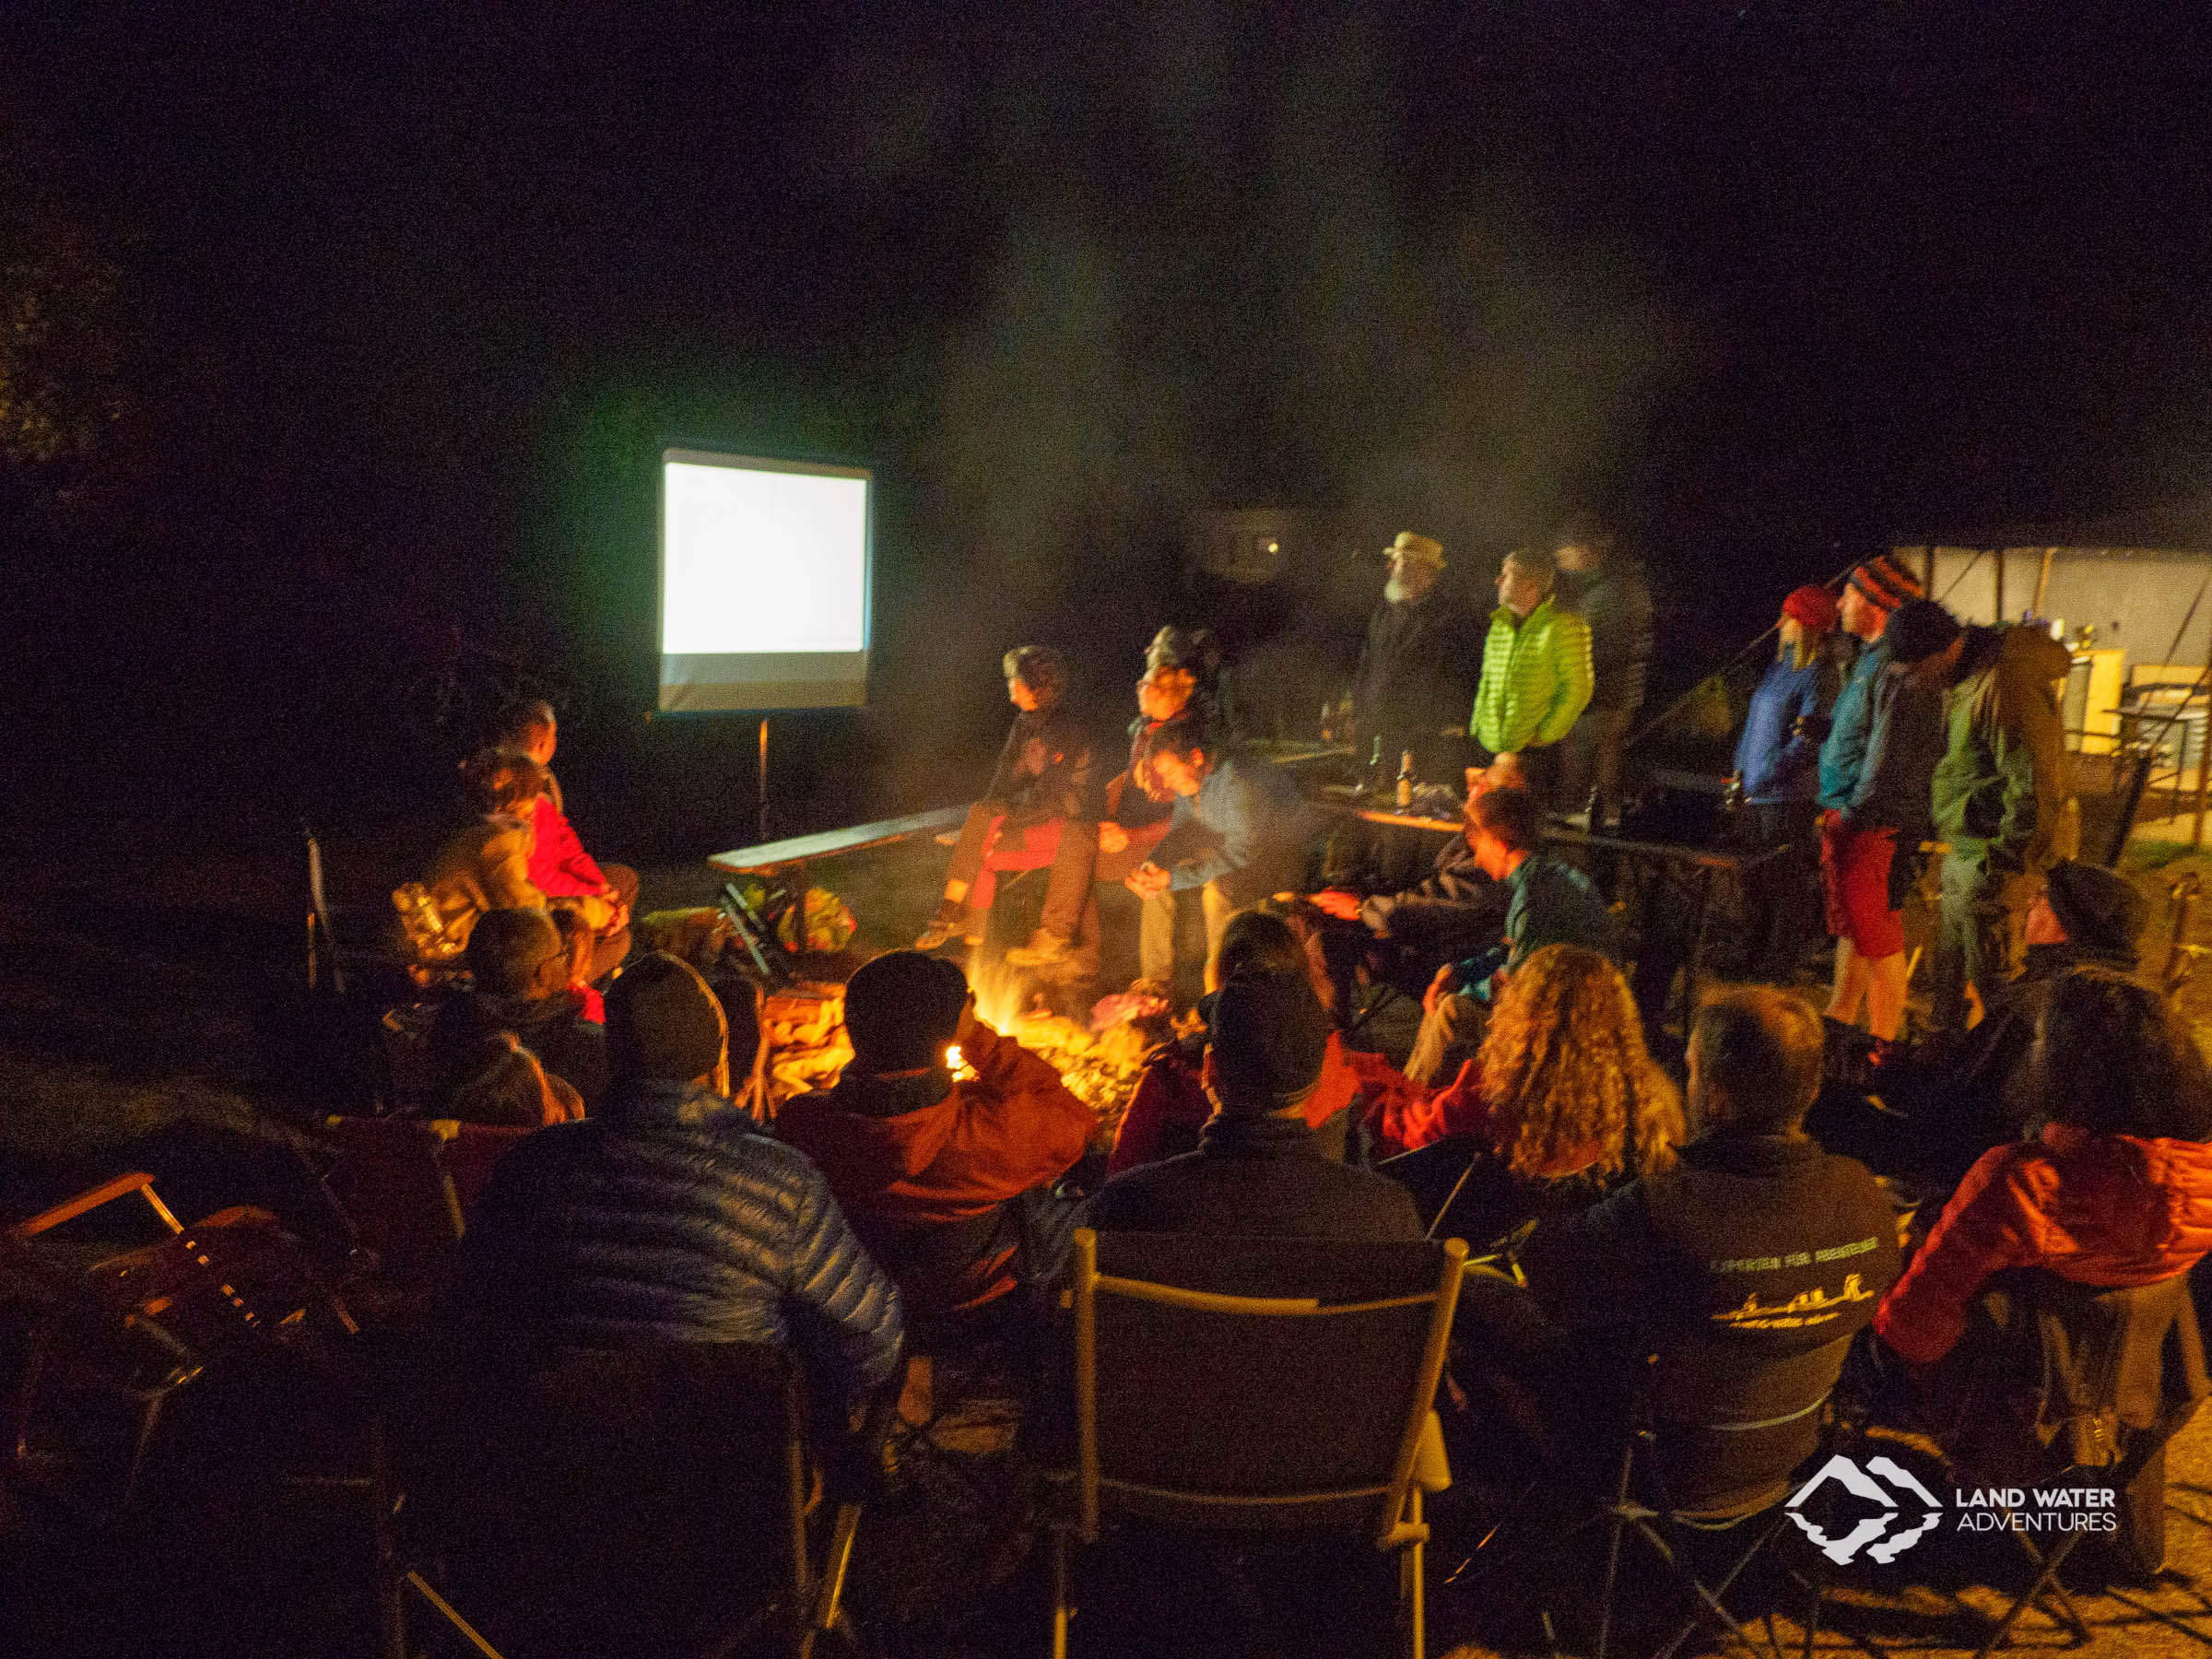 Campfire evening end of season 2018 © Land Water Adventures